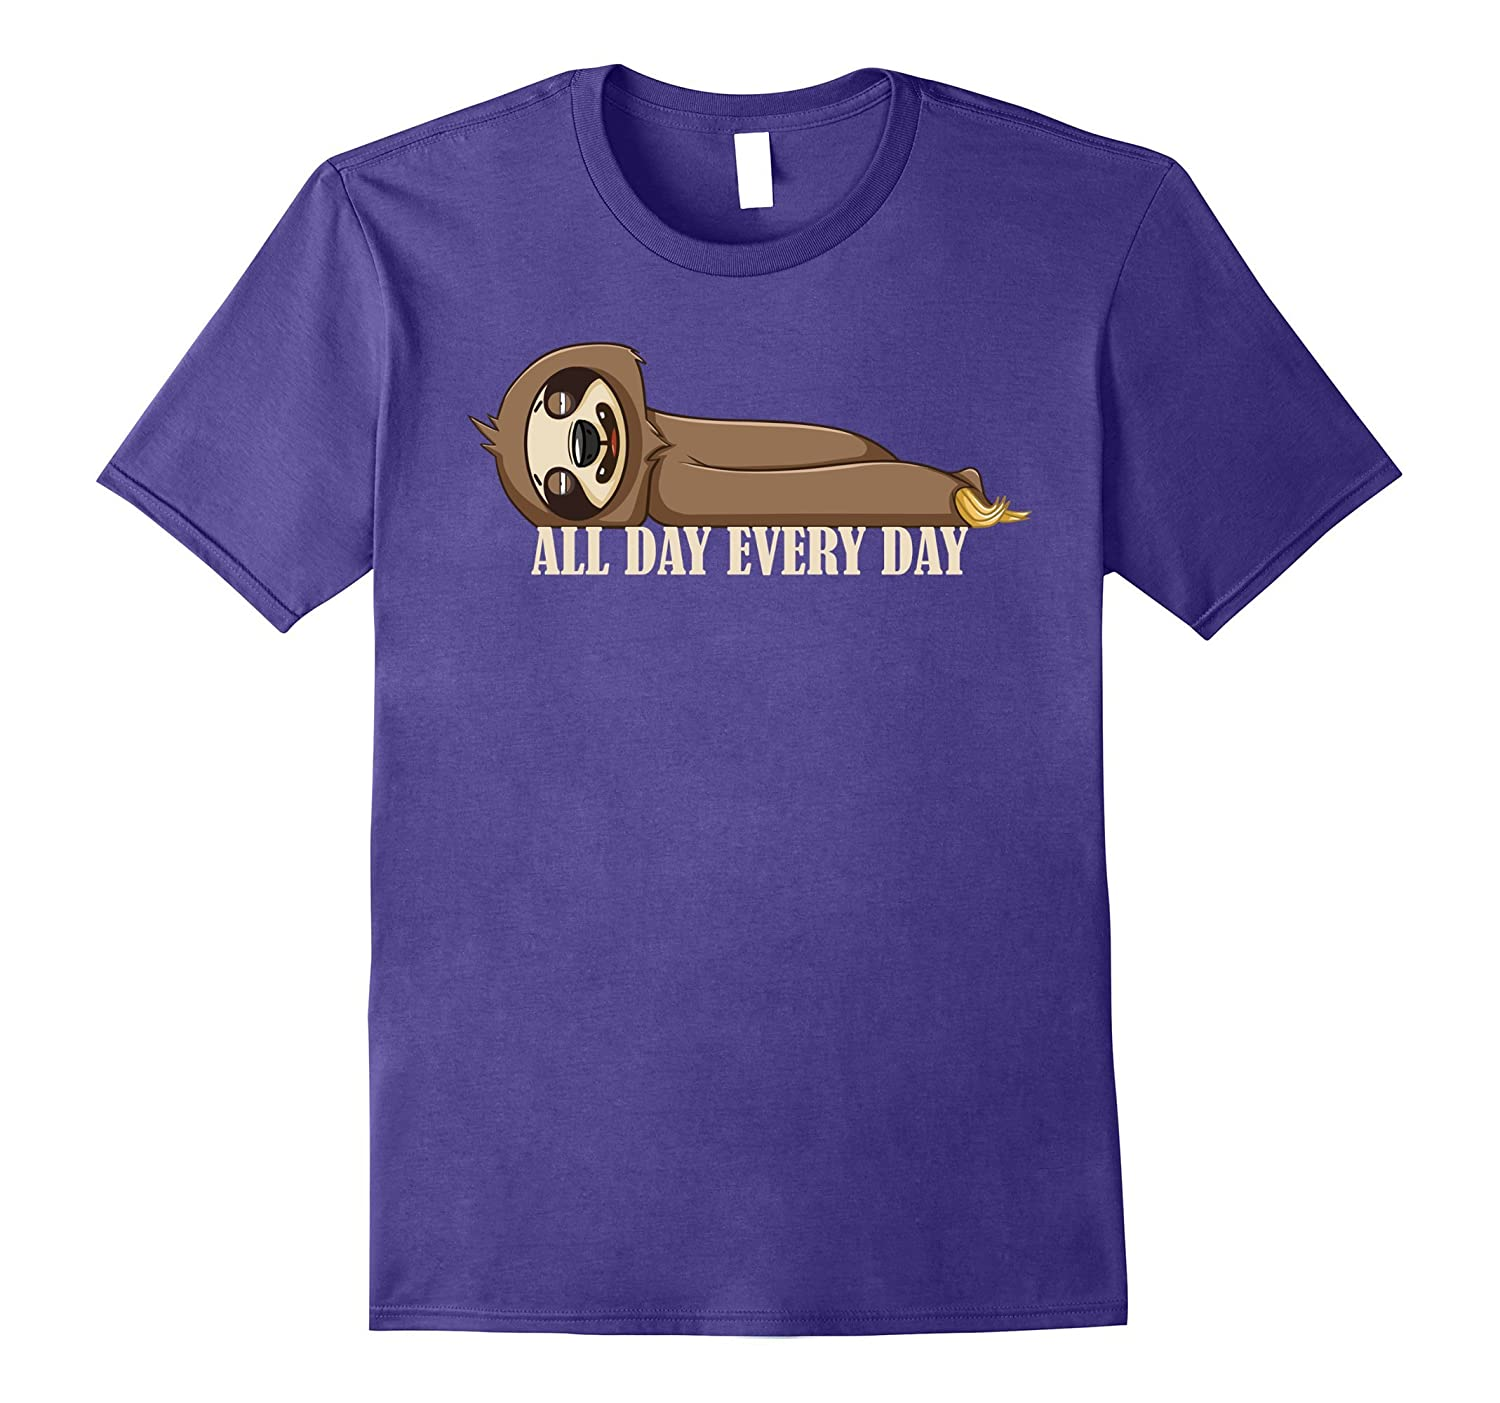 Cute Sloth Shirt All Day Every Day-CL